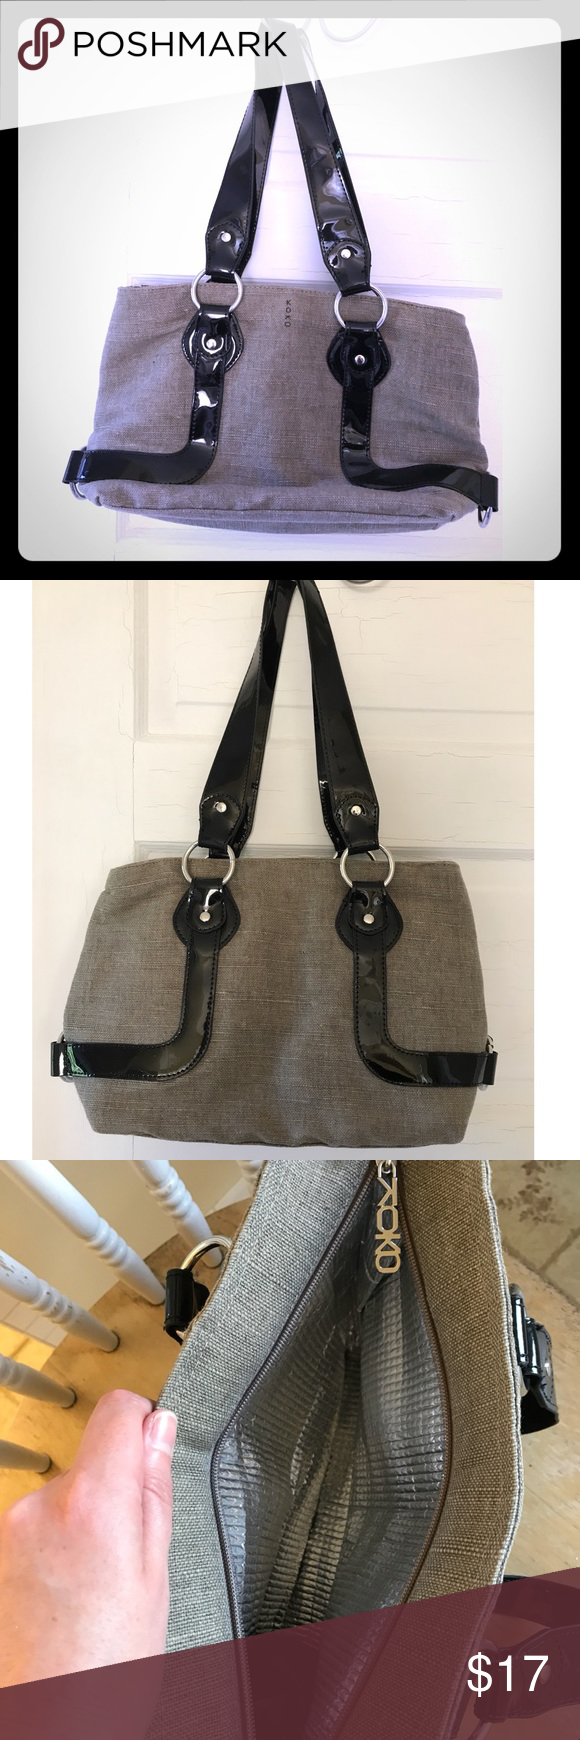 80d259fc1 Crochet Shoulder Bags · Schools · Koko insulated lunch box Adorable black  and gray insulated lunch box with patent leather straps/